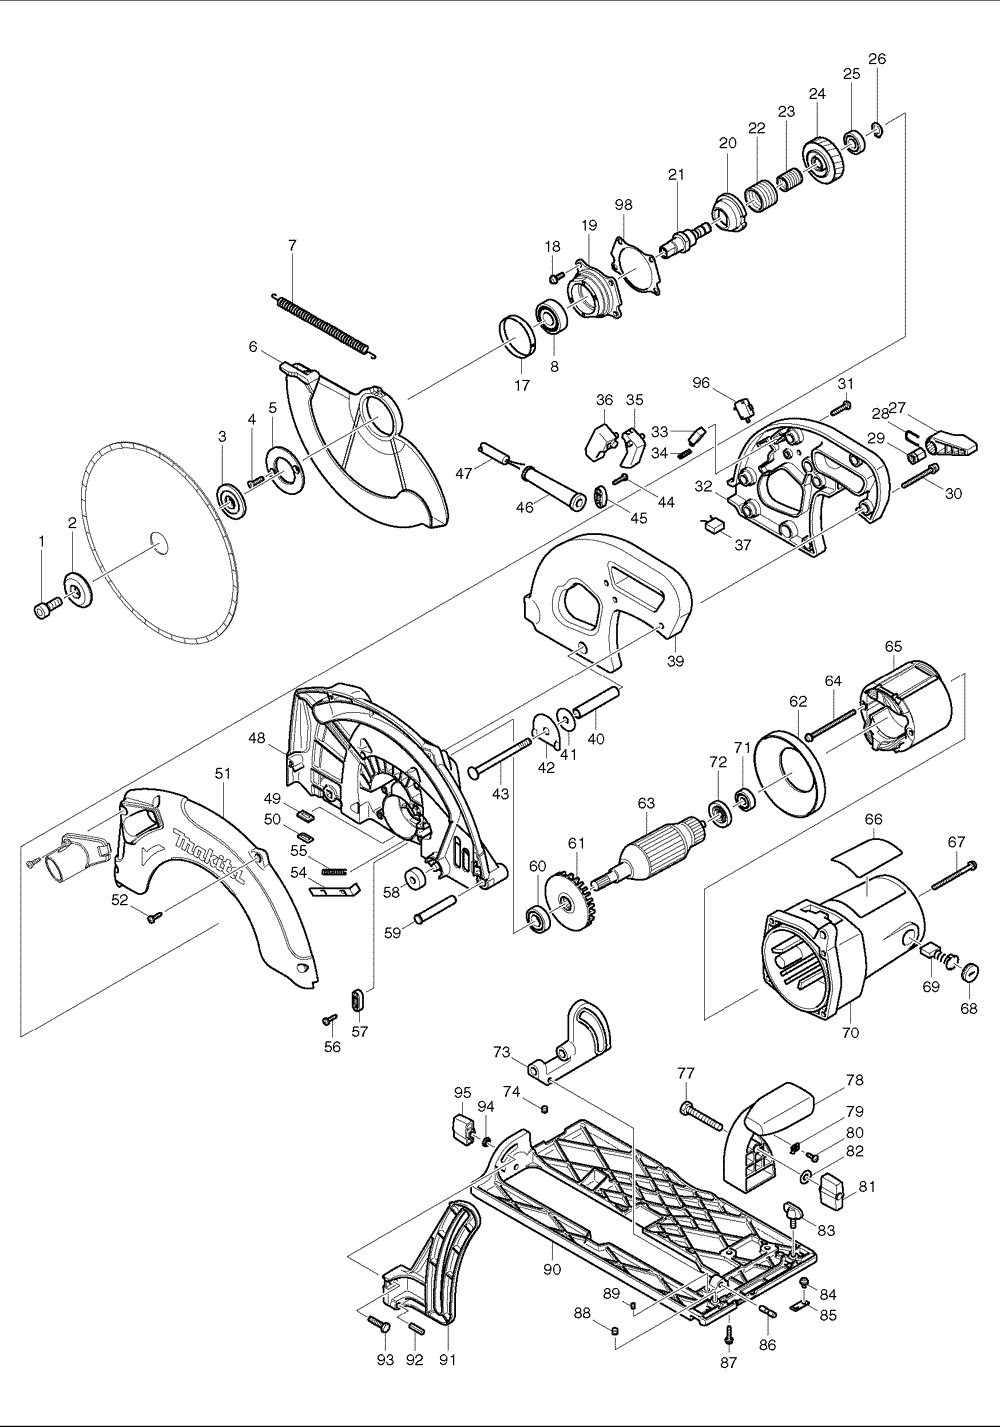 2005 scion xb transmission diagram